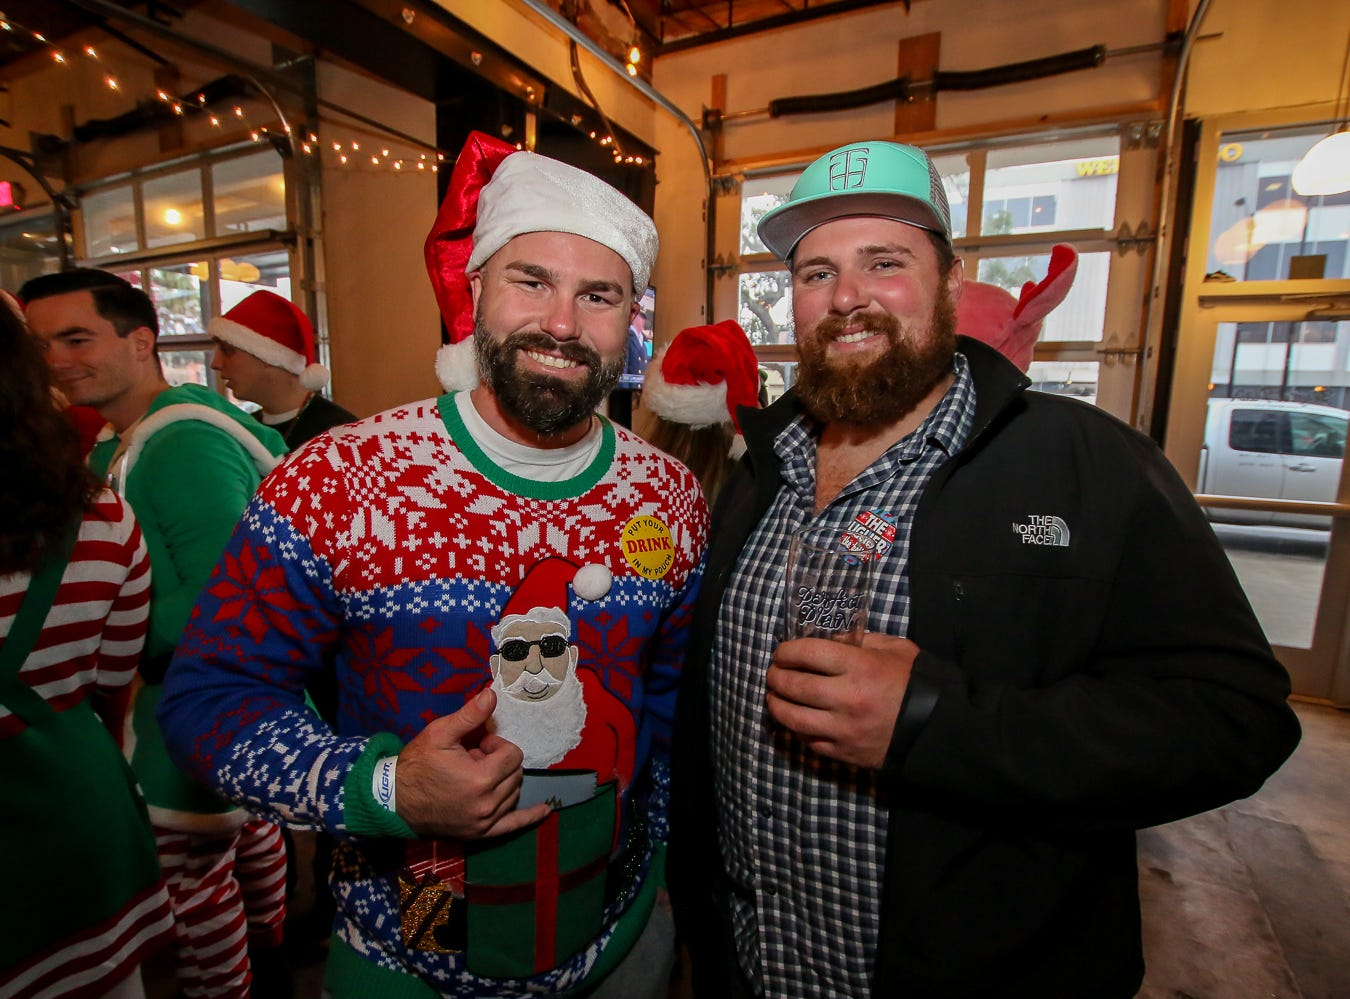 Kaboom Sports and Social Club kicks off its sixth annual Ugly Sweater Pub Crawl at Perfect Plain Brewing Co. on Saturday, Dec. 8, 2018.